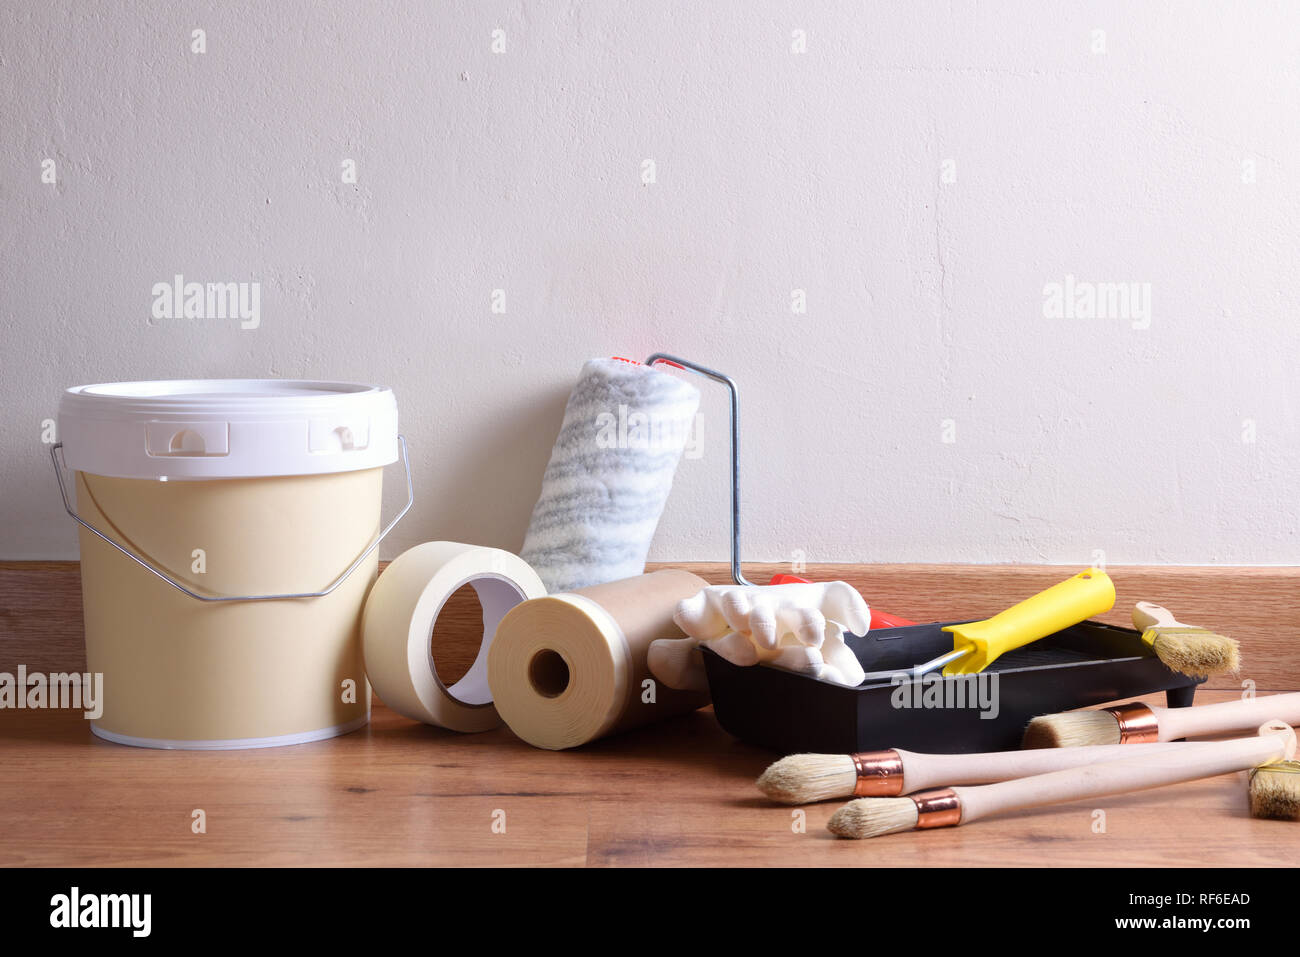 Painting Tools For Home On Table With White Wall Background